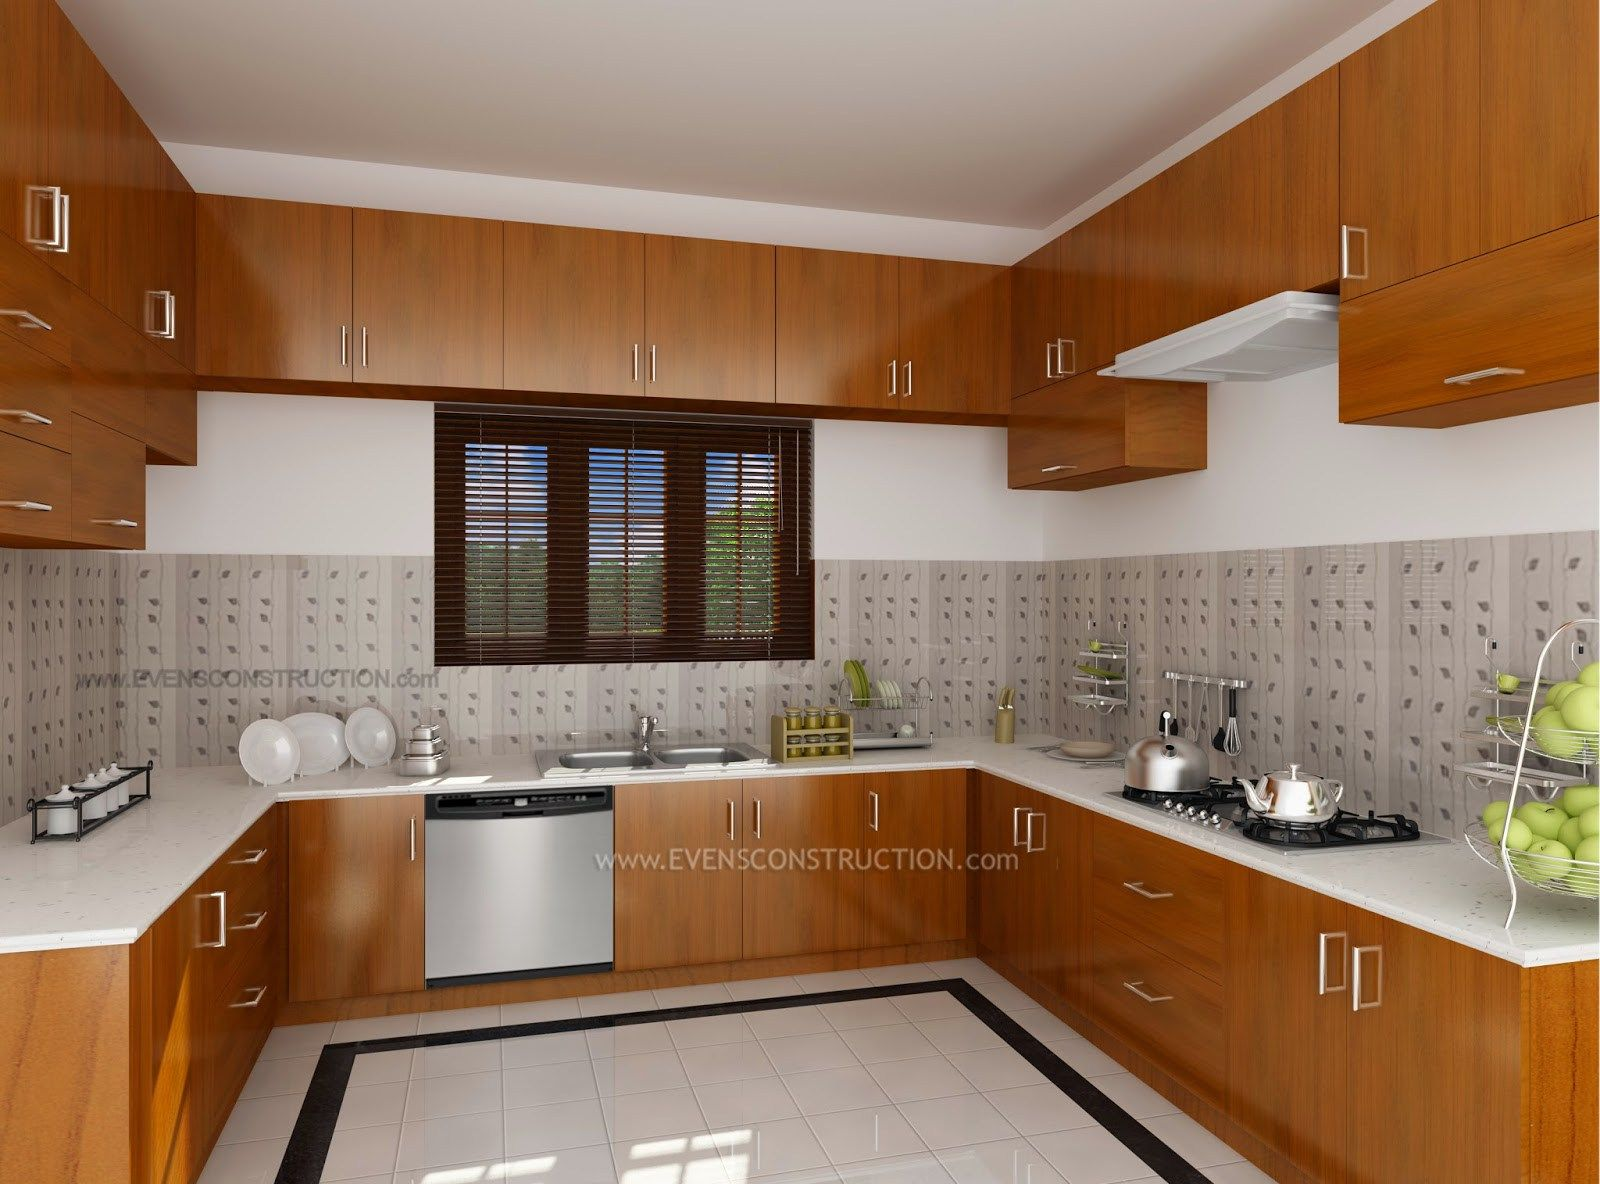 Design Interior Kitchen Home Kerala Modern House Dining Designs Subin Surendran Architects